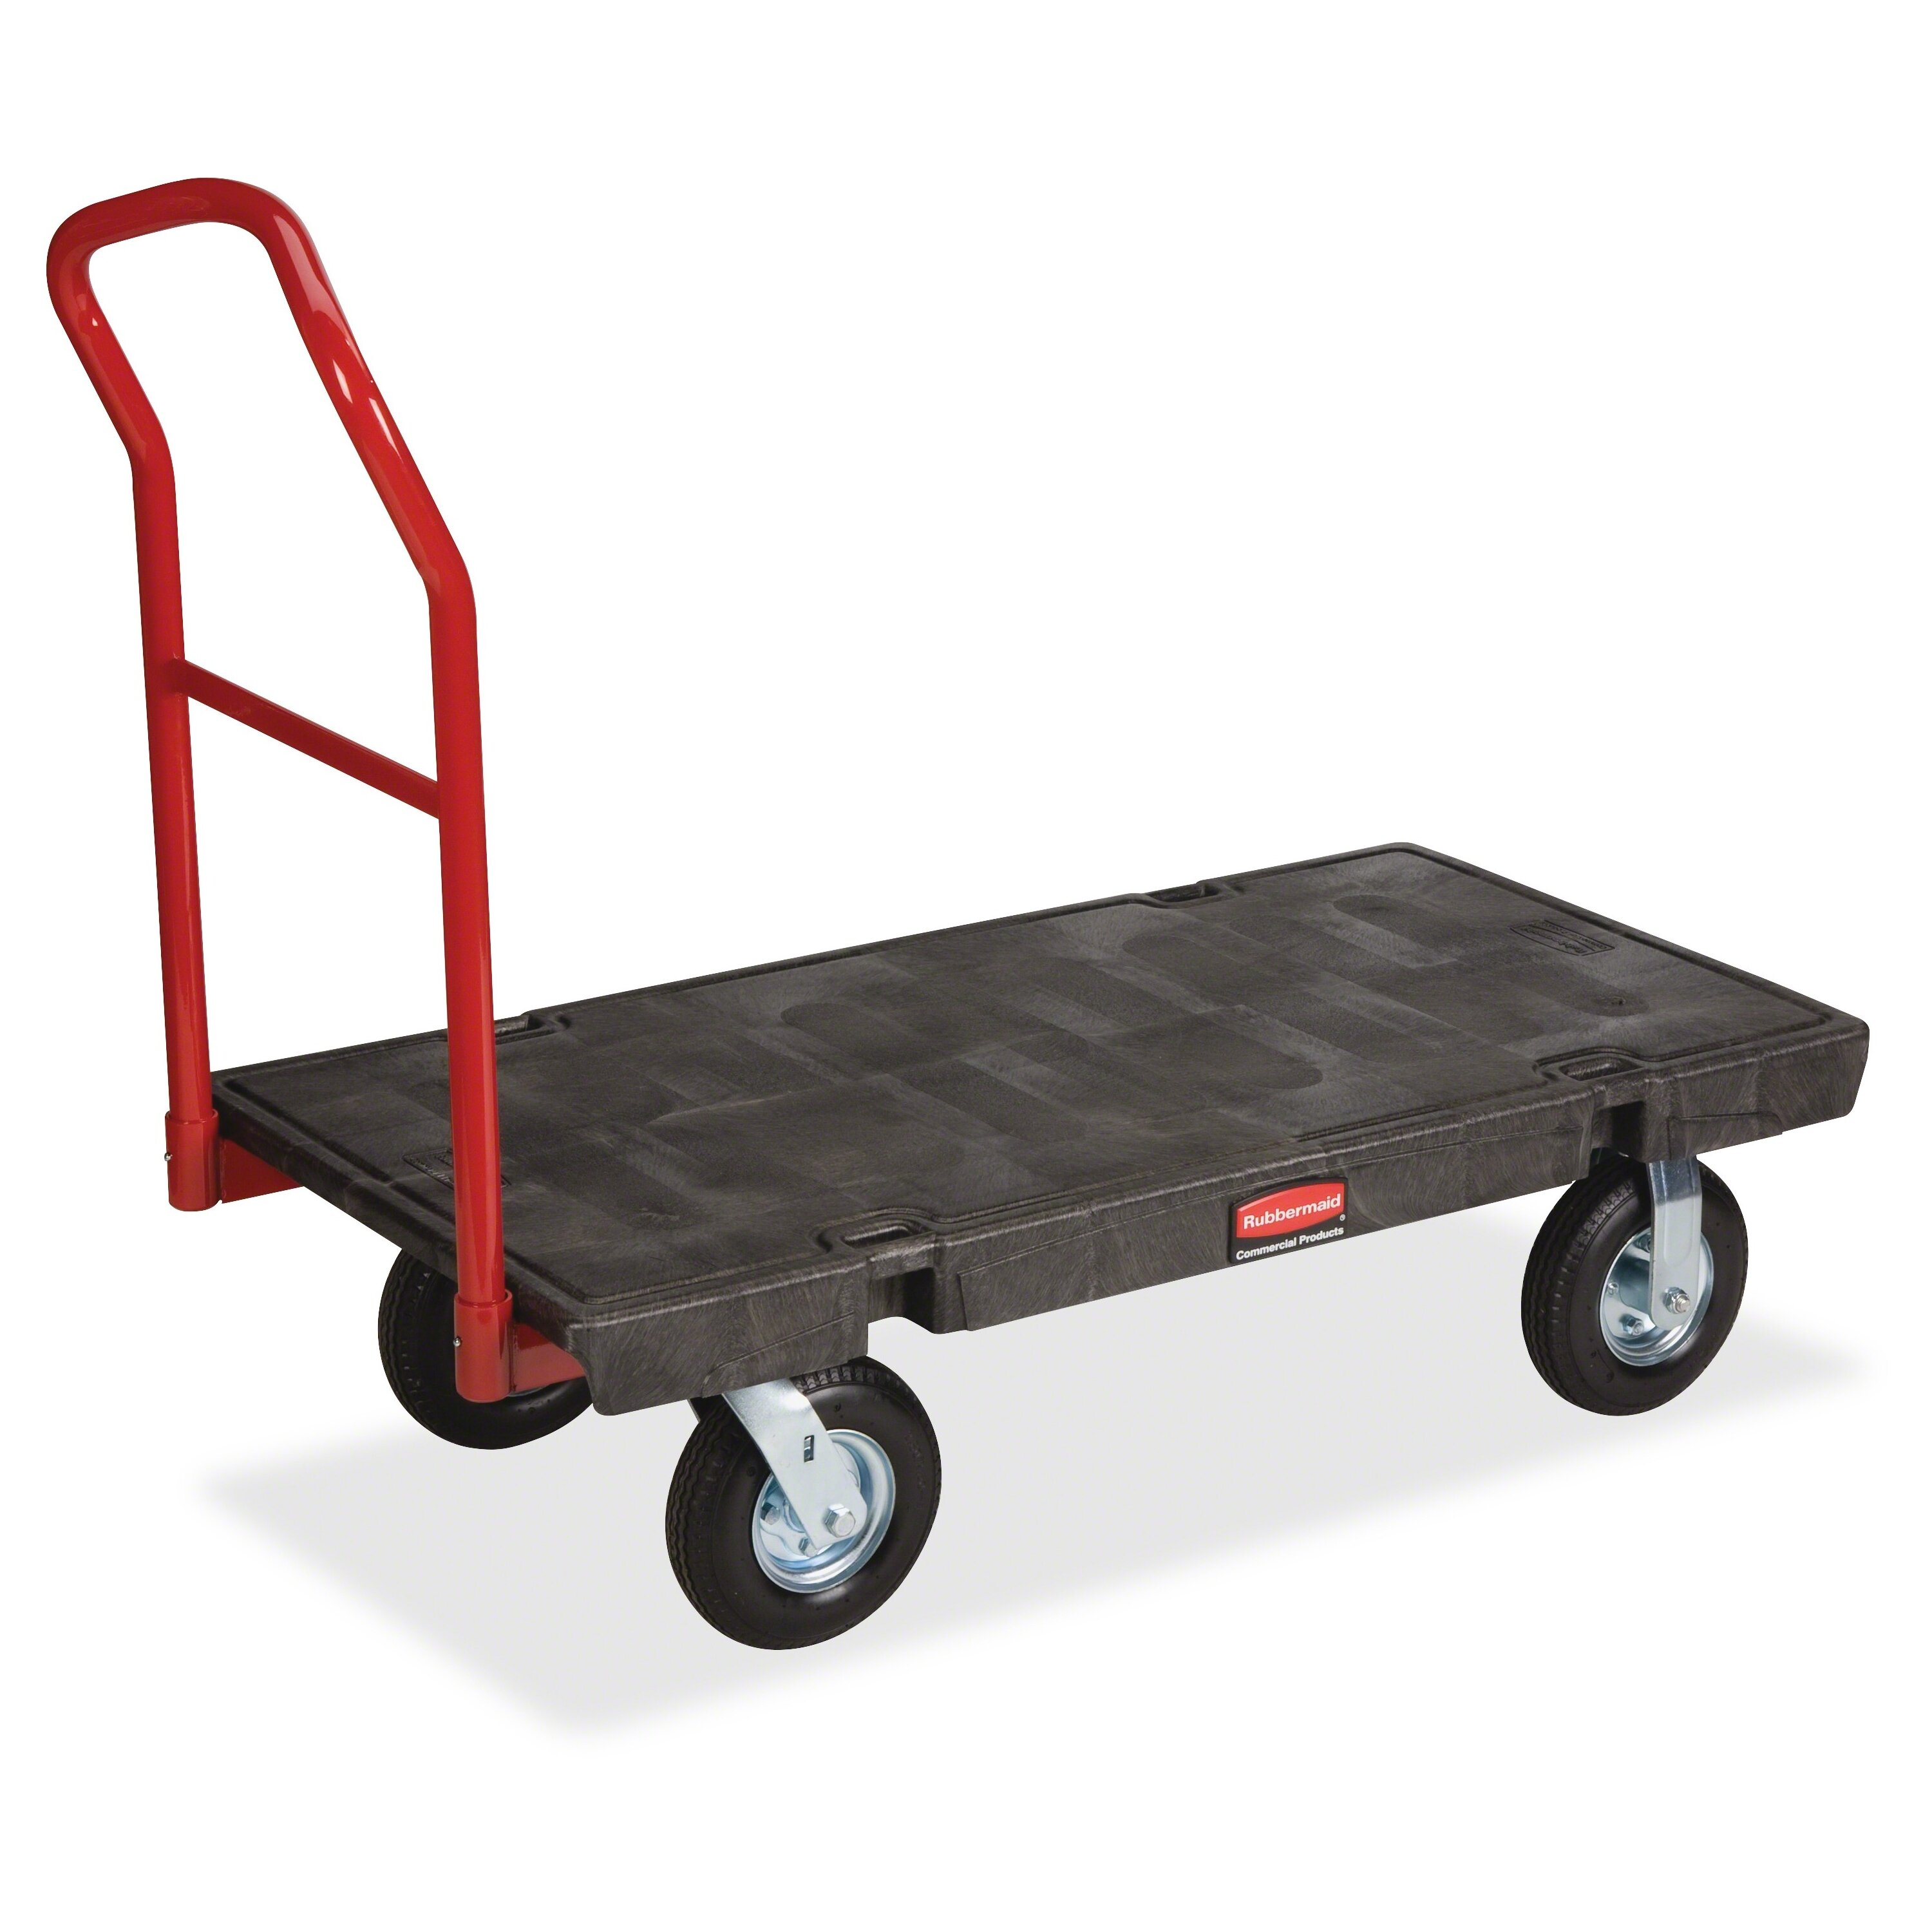 Rubbermaid Commercial Products 2000 Lb Capacity Heavy Duty Platform Dolly Wayfair